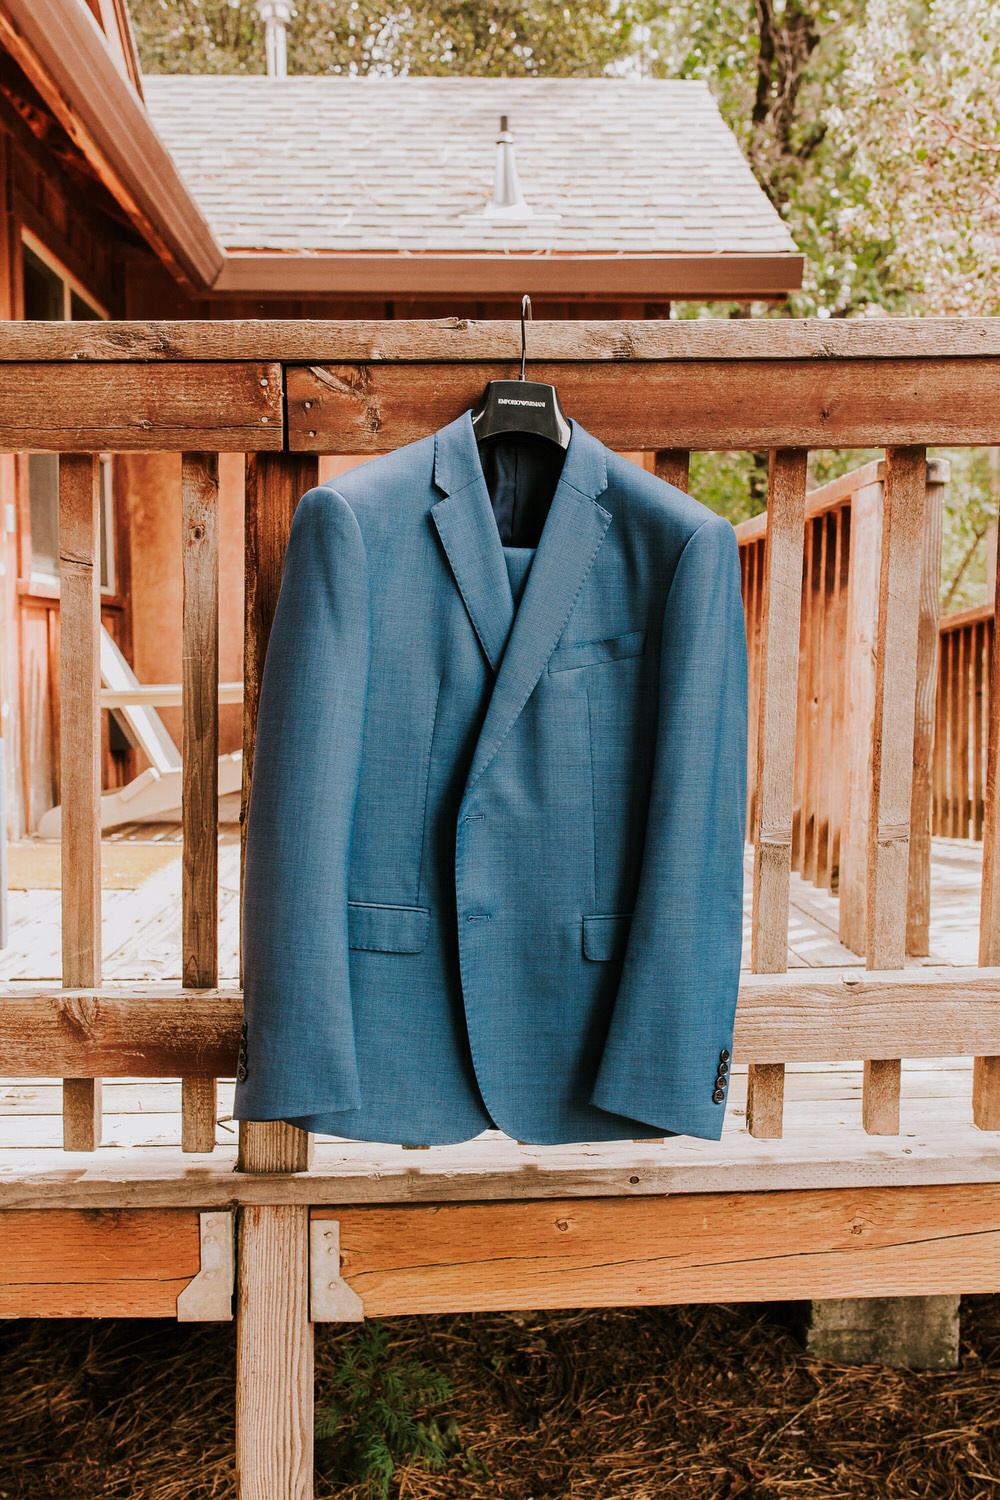 groom suit jacket hanging at Evergreen Lodge for wedding